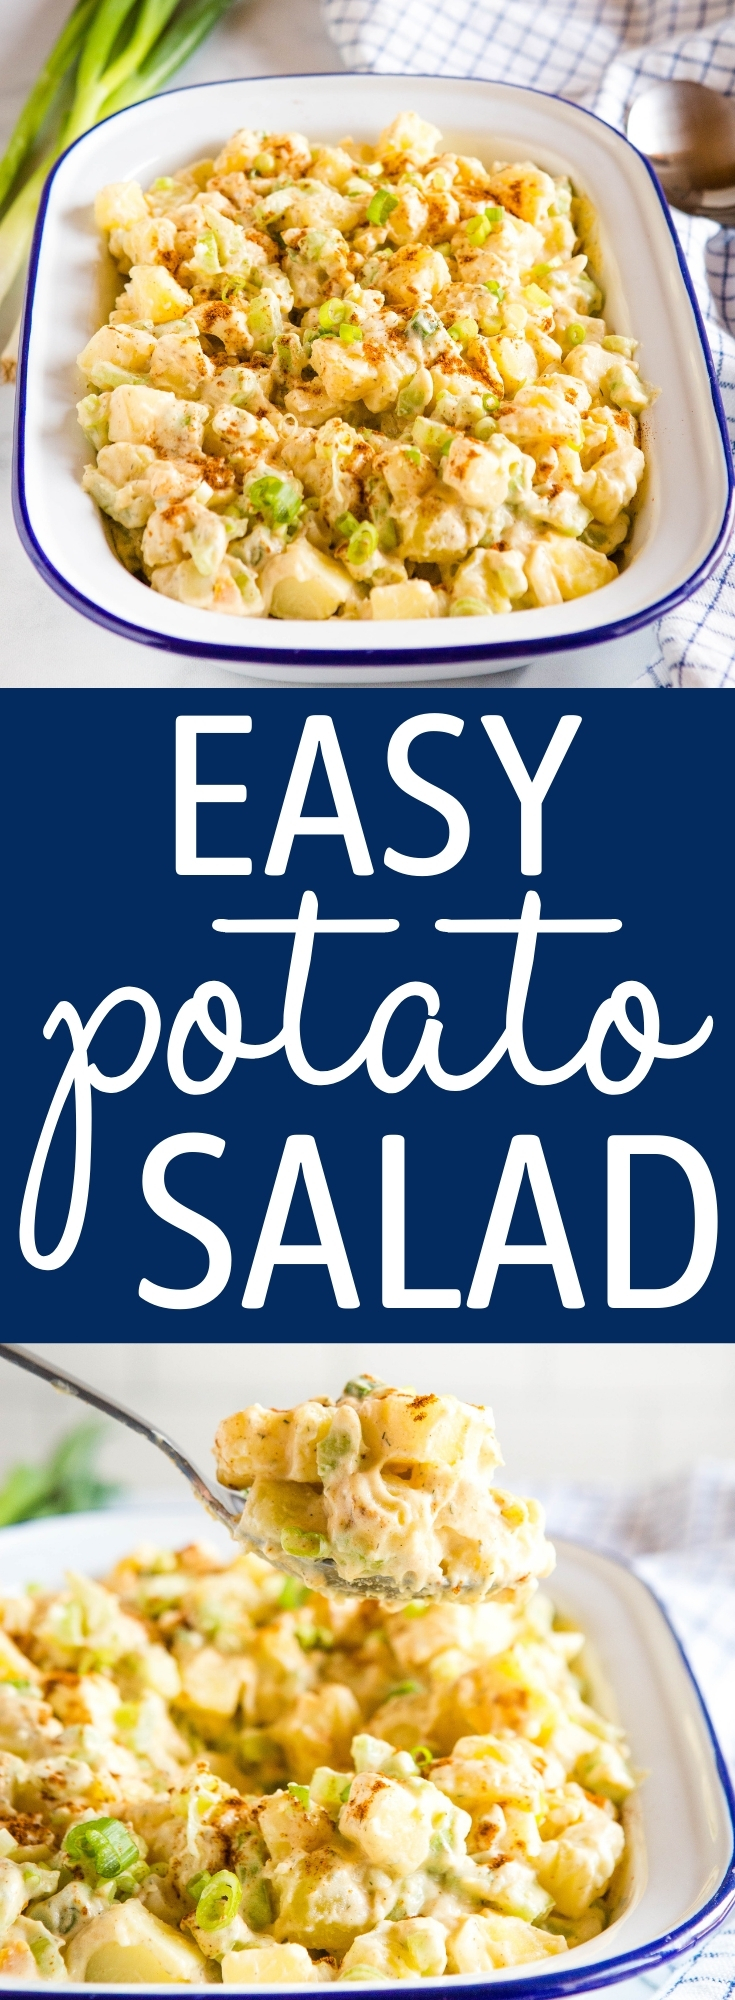 This Easy Potato Salad Recipe is aclassic potato salad that's perfect for a backyard barbecue! A crowd-pleasing side dish recipe for summer! Recipe from thebusybaker.ca! #classicrecipe #potatosalad #classicpotatosalad #easypotatosalad #sidedish #summer #barbecue #family via @busybakerblog